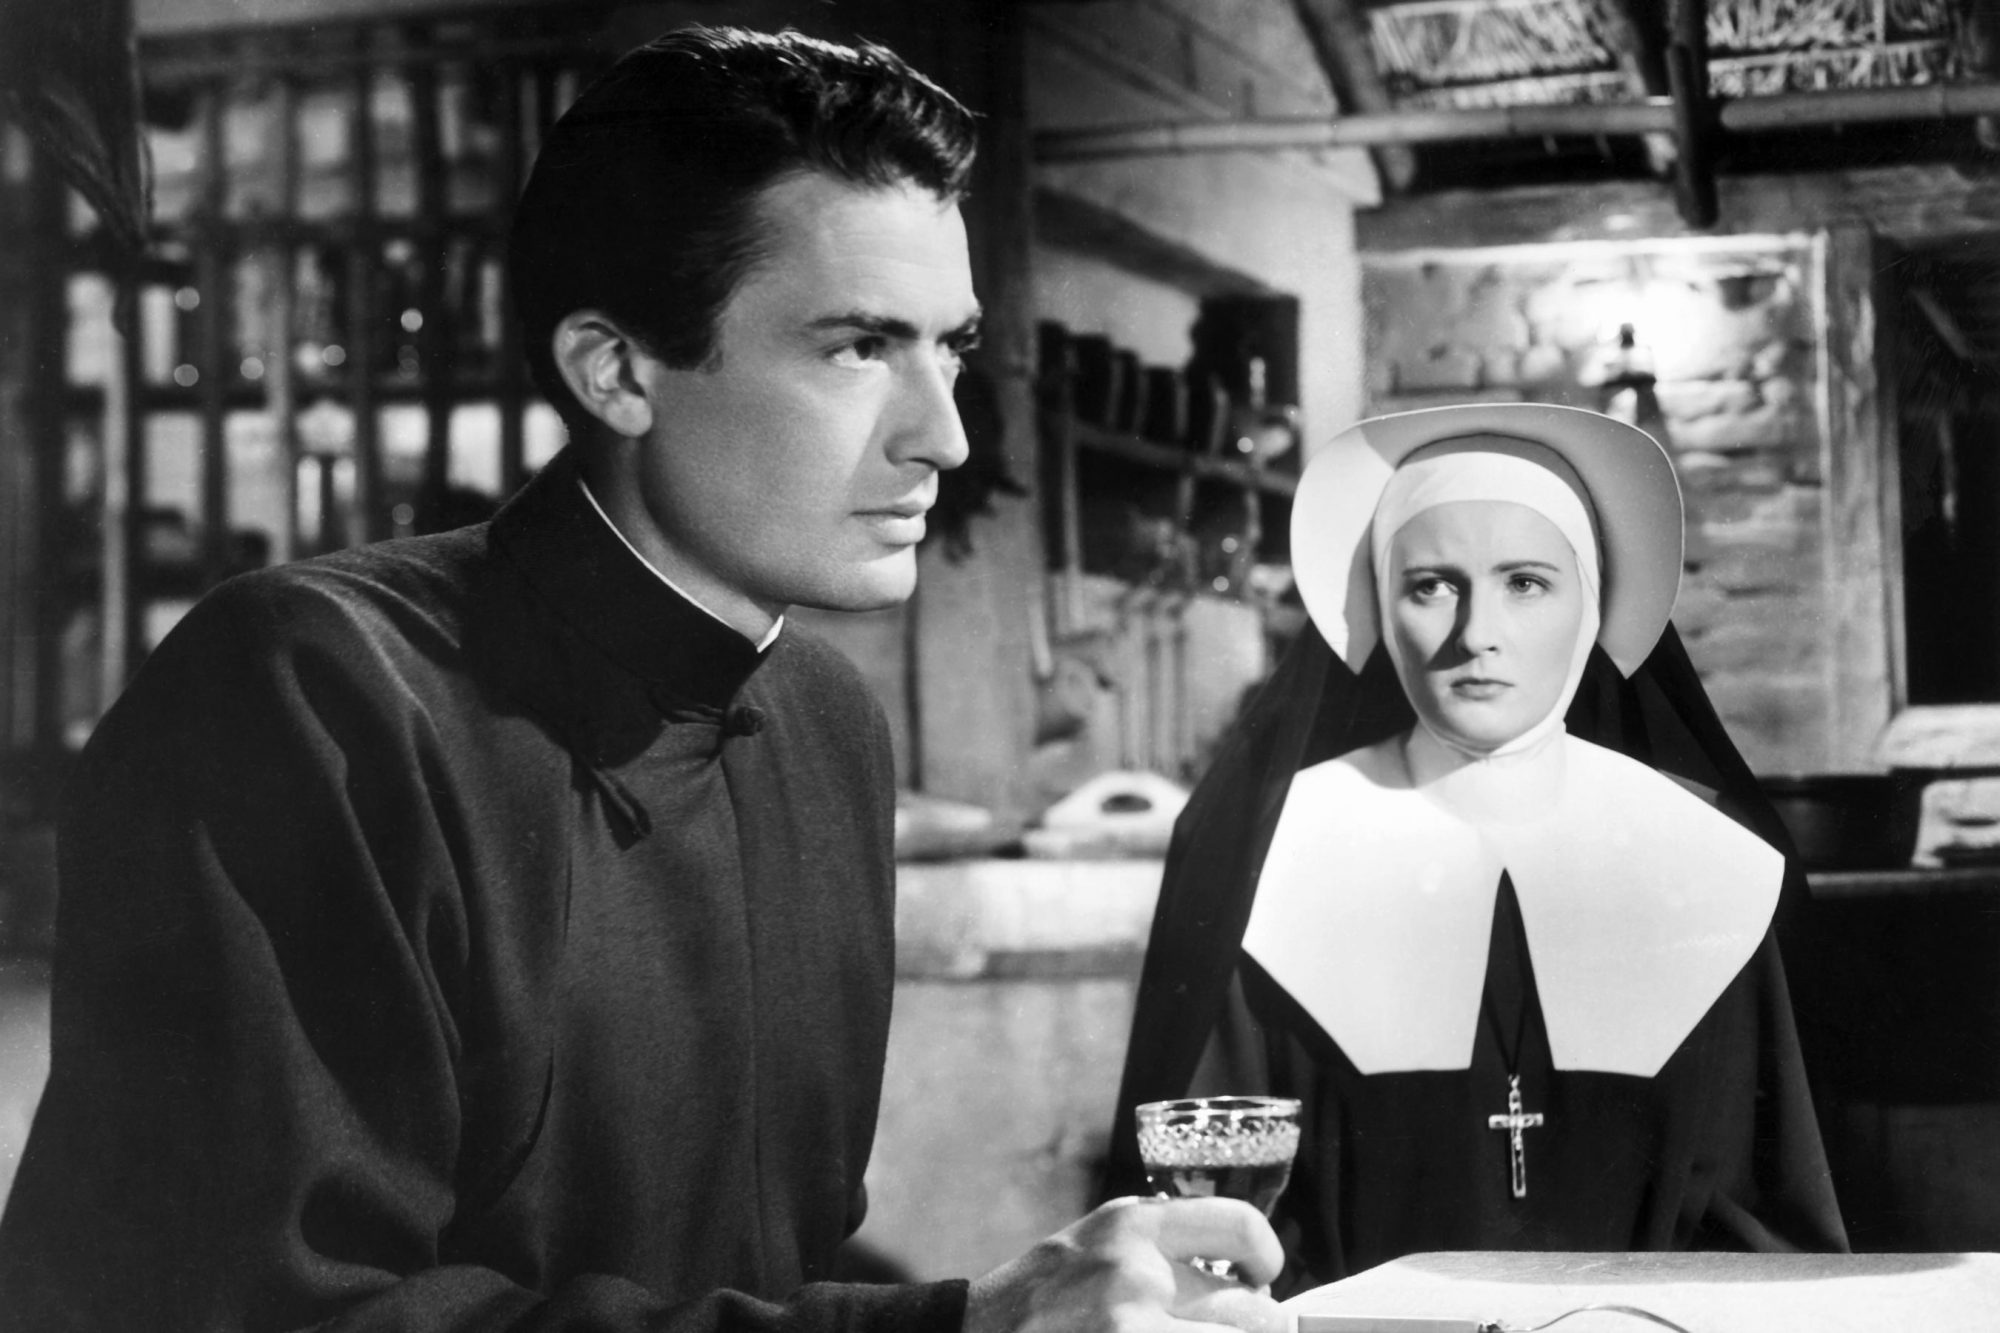 Father Francis Chisholm (Gregory Peck) in The Keys of the Kingdom